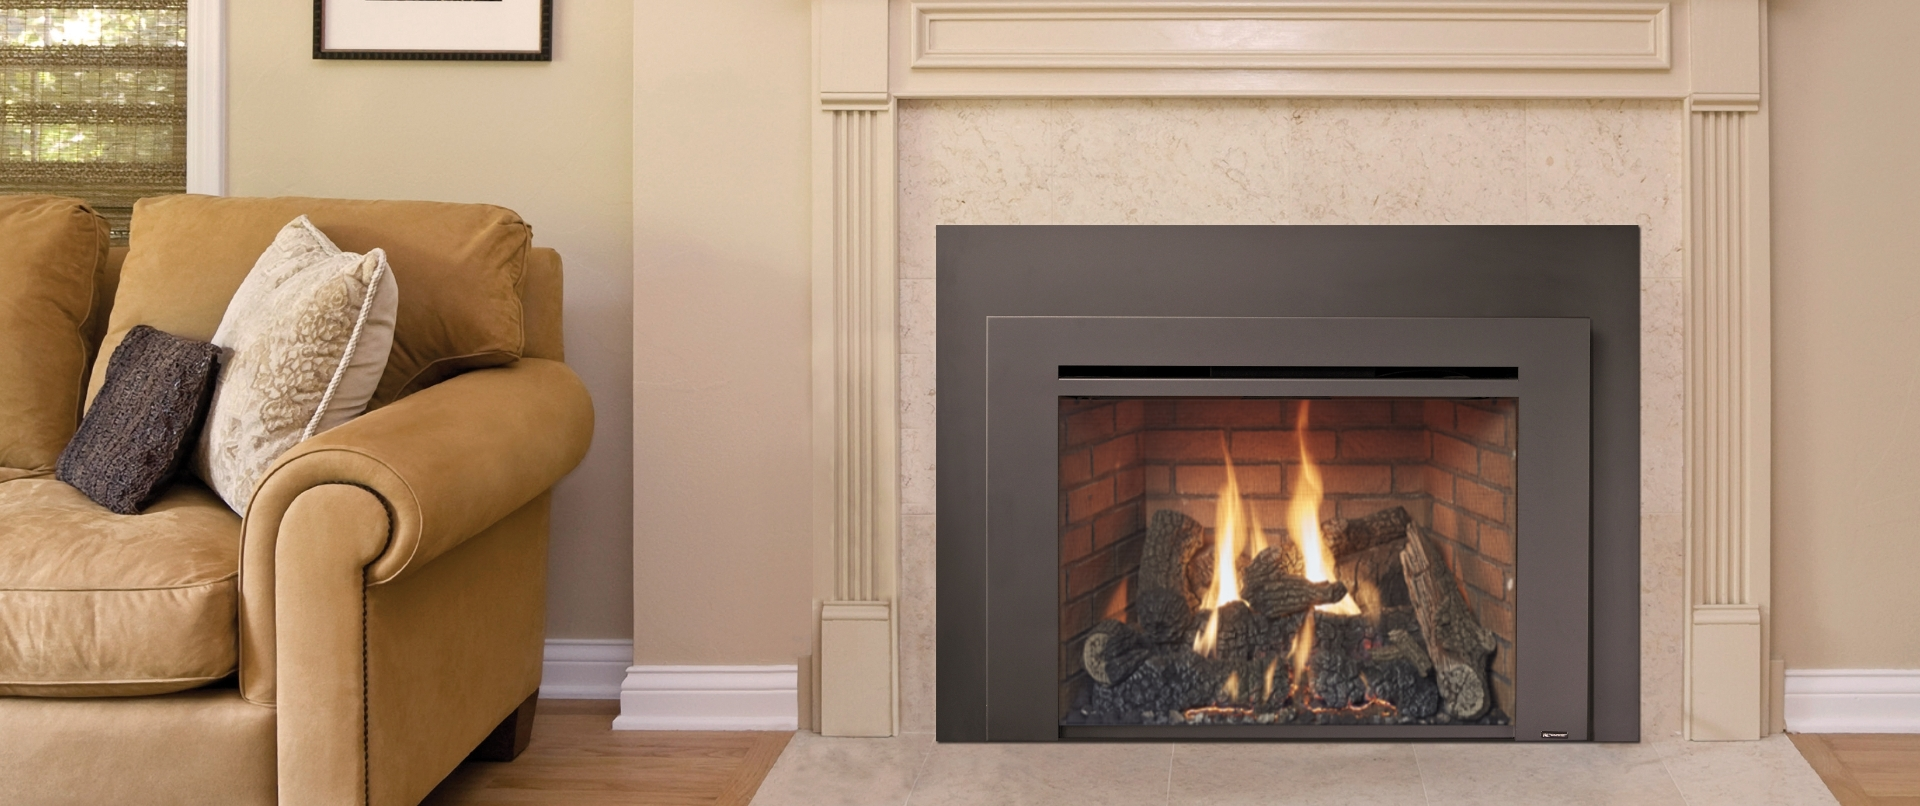 Rochester Fireplace Gas Amp Wood Inserts Fireplaces And